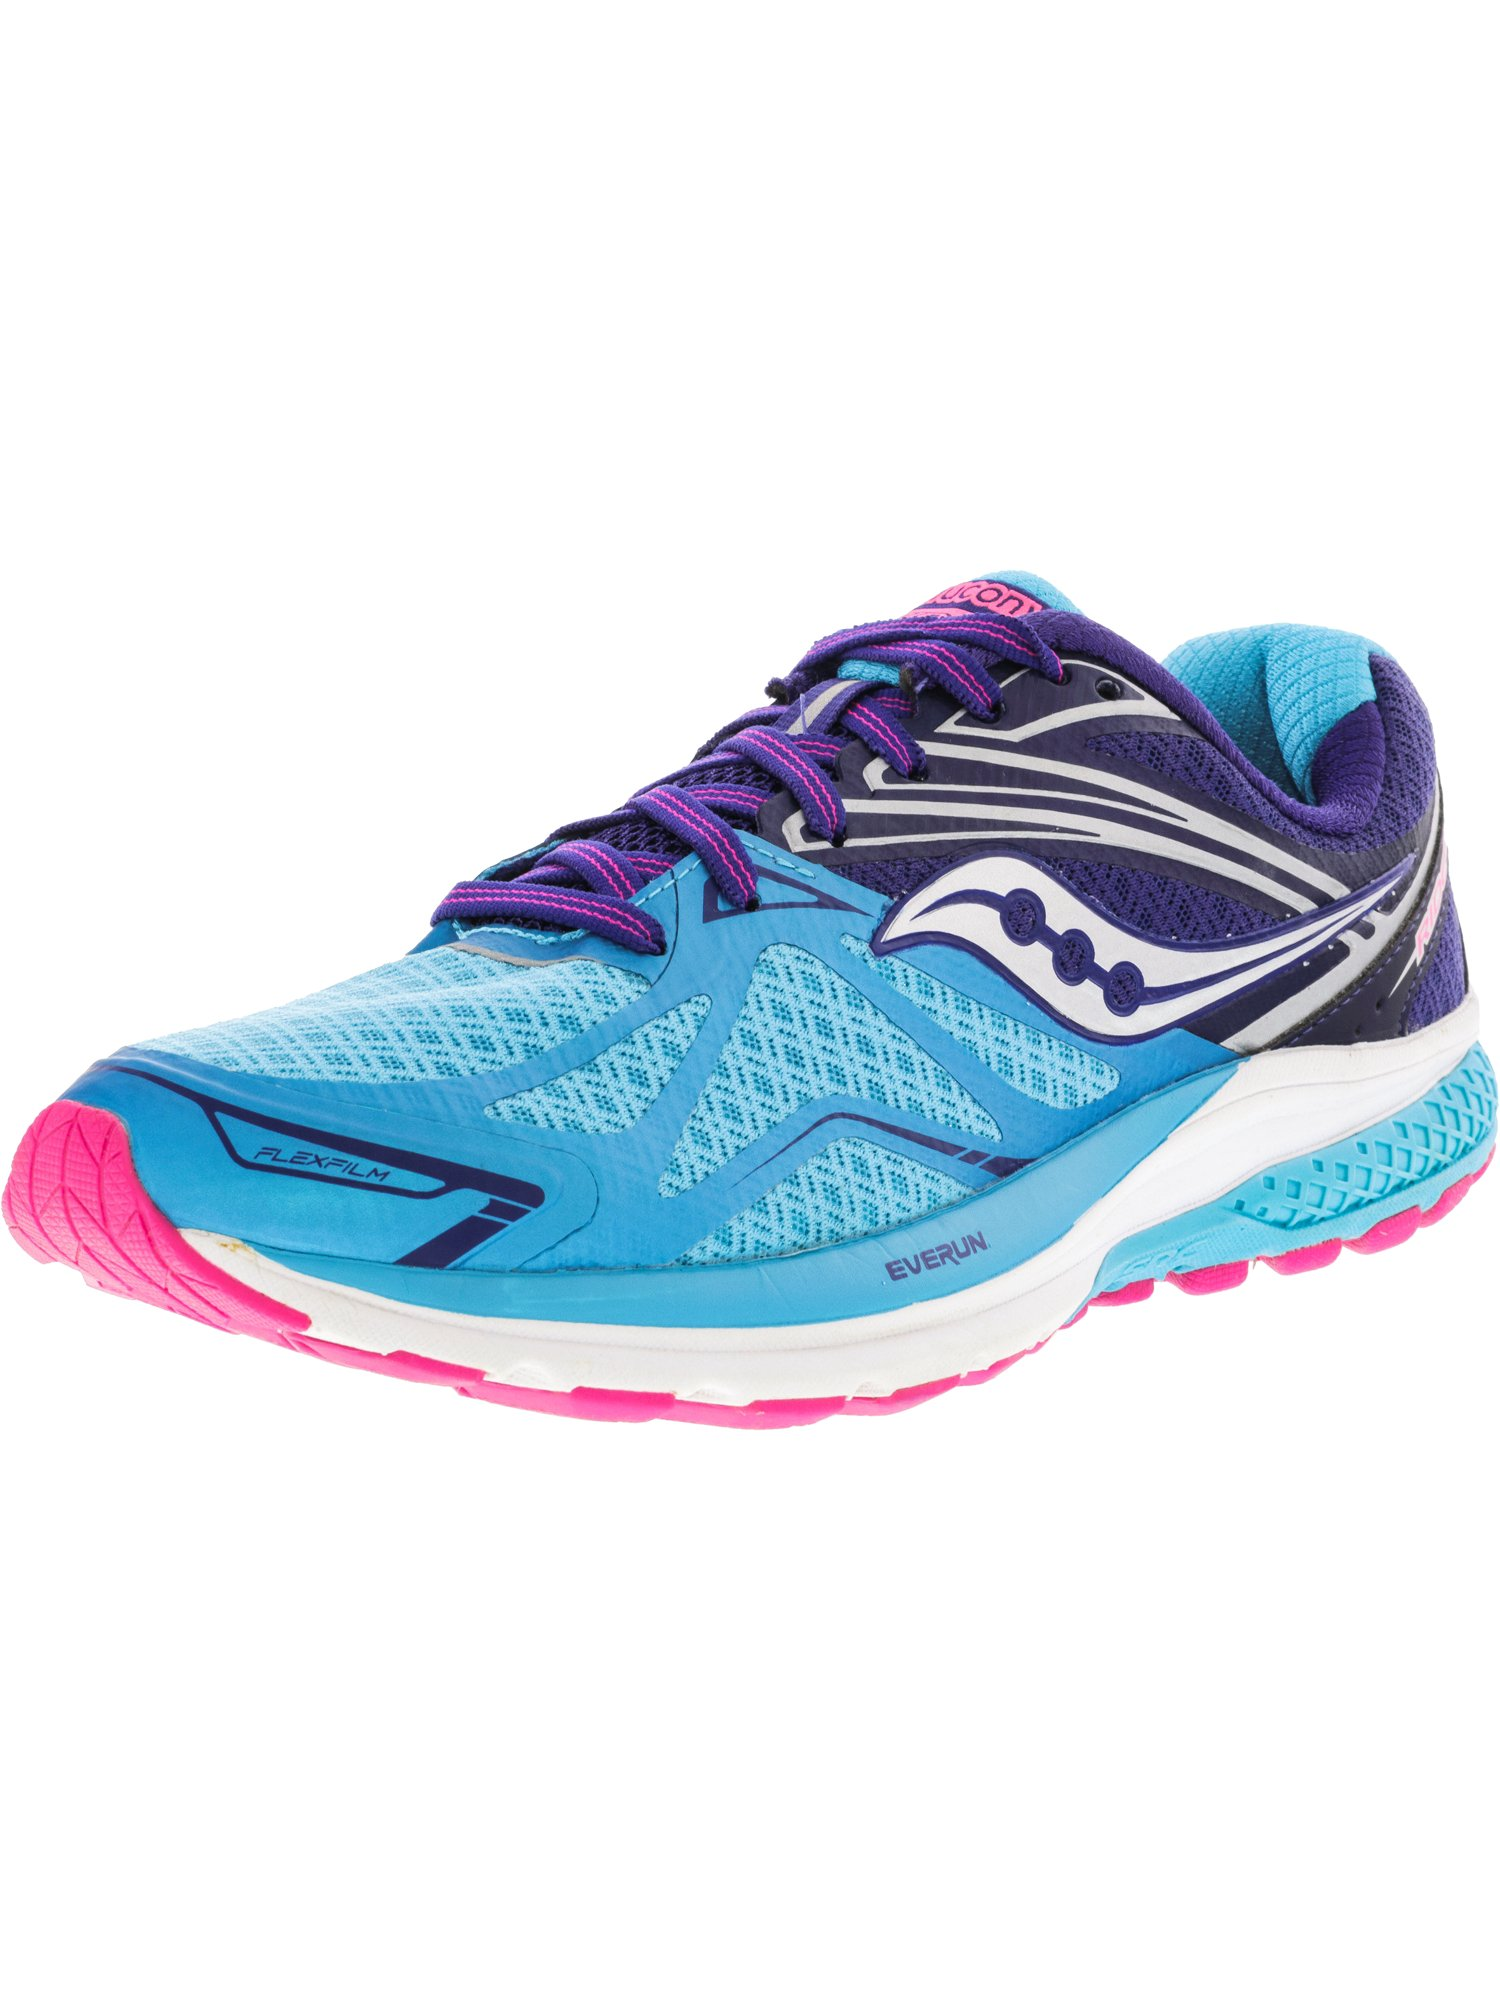 Saucony Women's Ride 9 Navy / Blue Pink Ankle-High Running Shoe - 5N